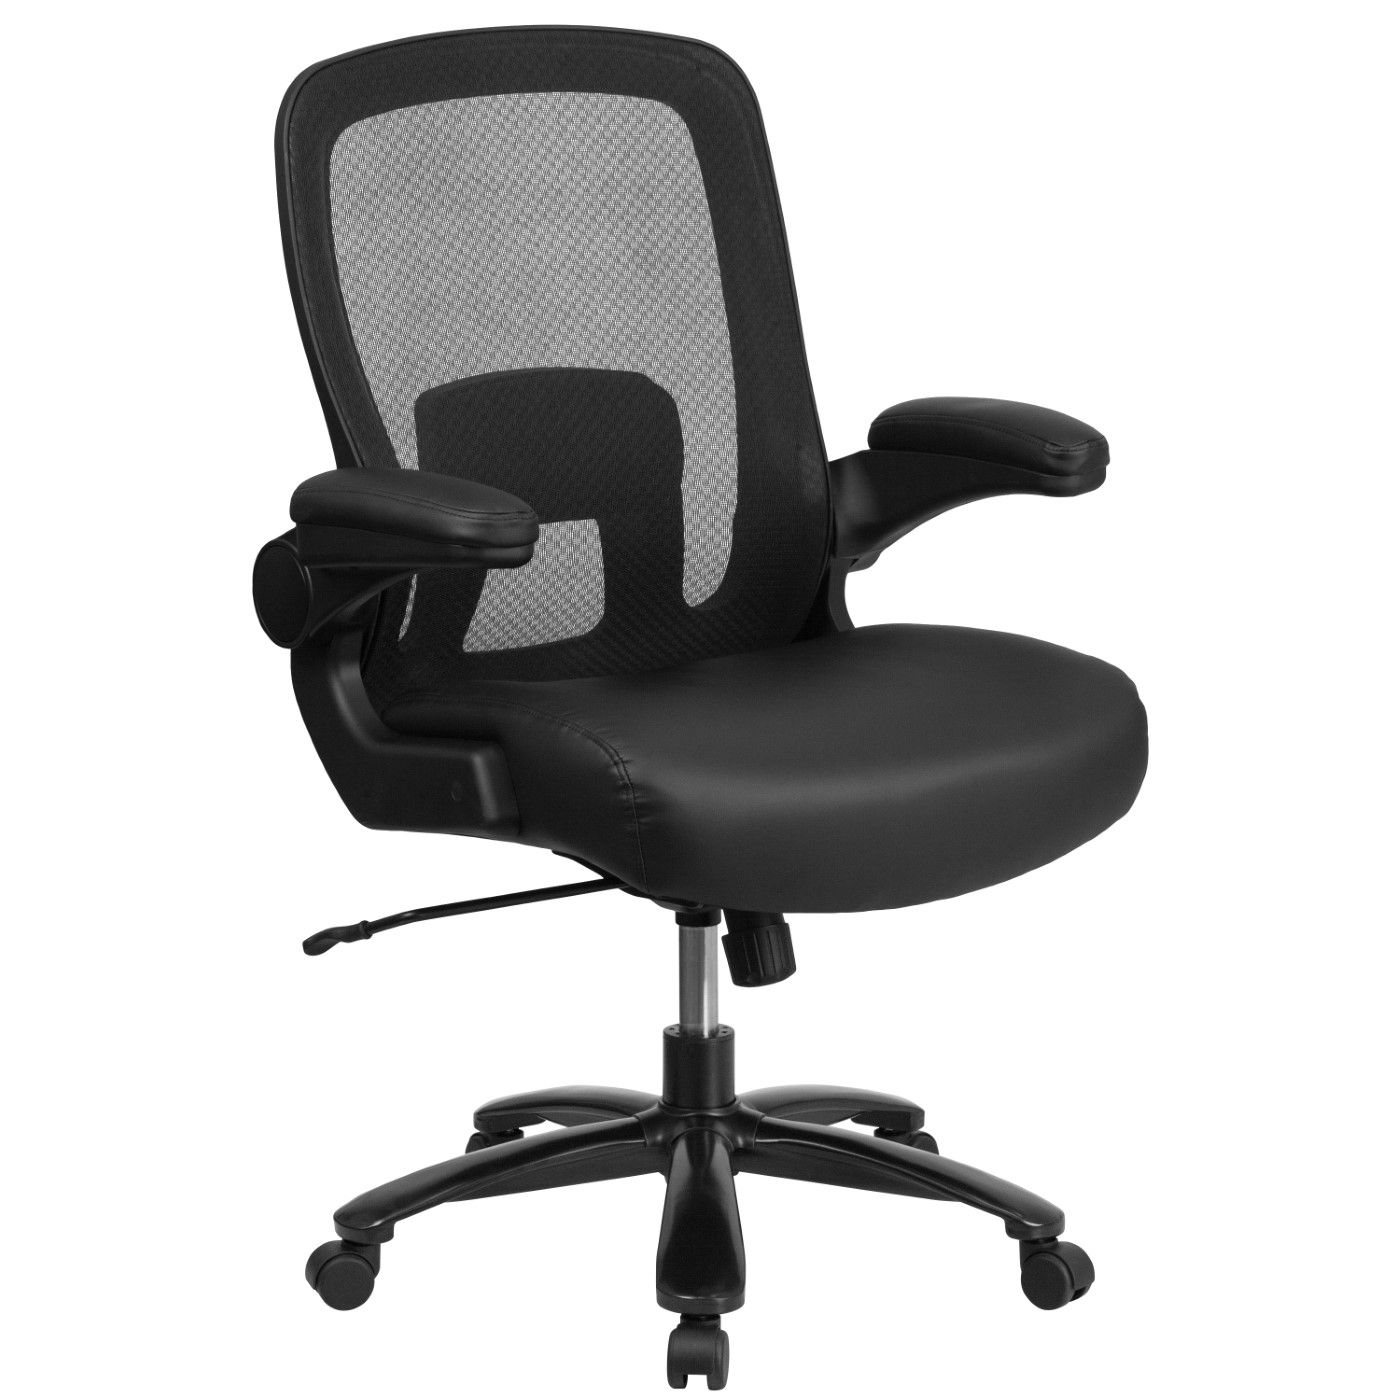 TOUGH ENOUGH Series Big & Tall 500 lb. Rated Black Mesh/LeatherSoft Executive Ergonomic Office Chair with Adjustable Lumbar